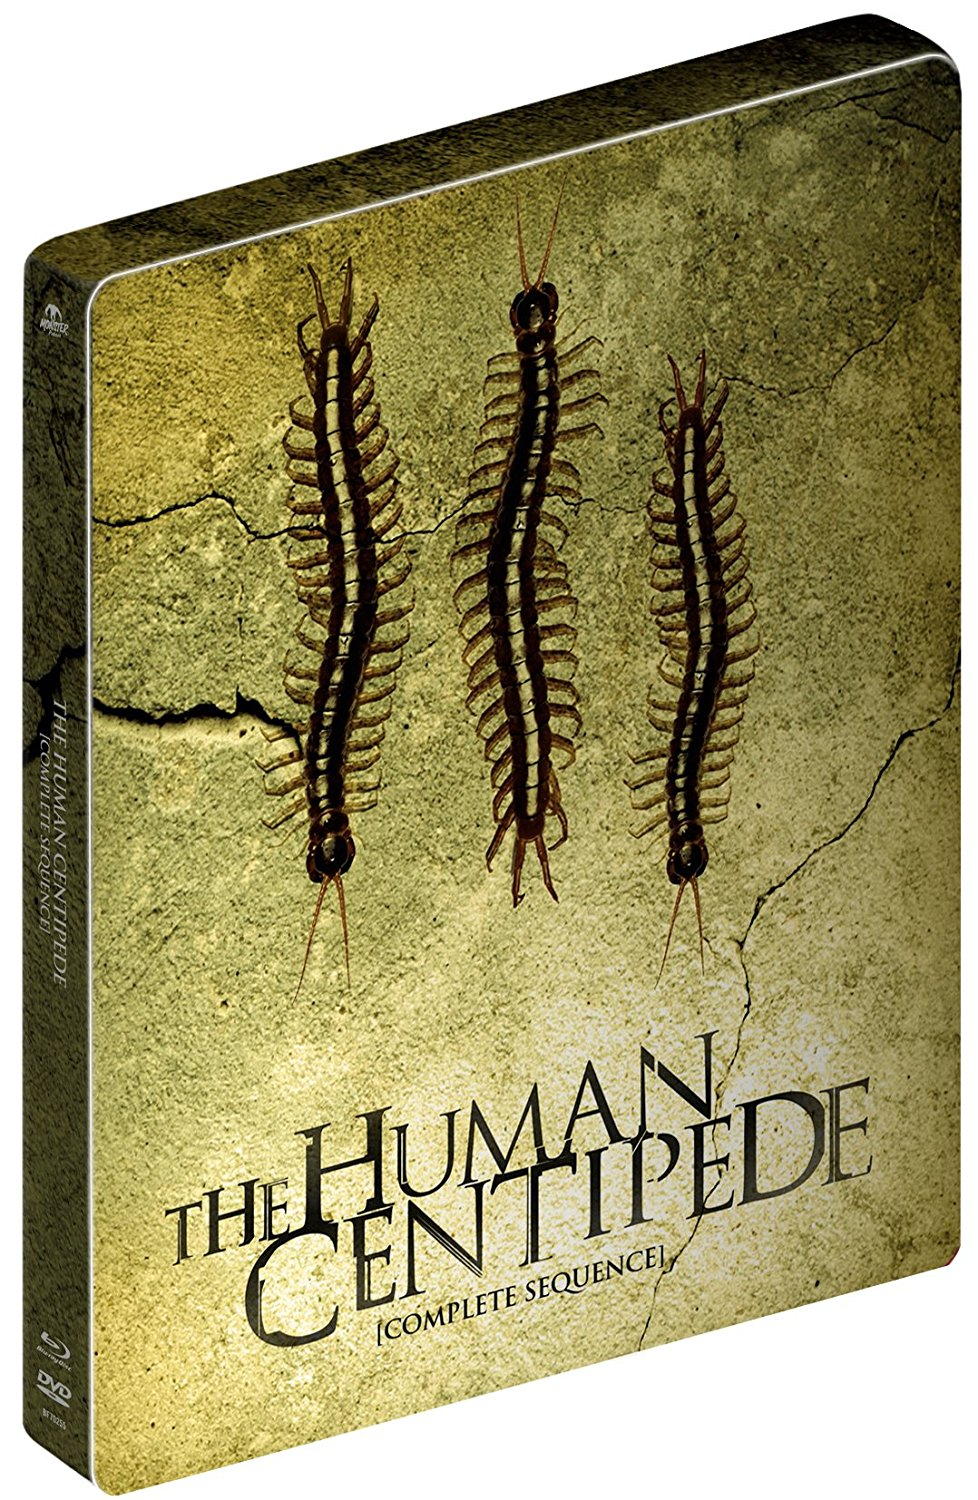 The Human Centipede Collection UK Steelbook Blu-Ray